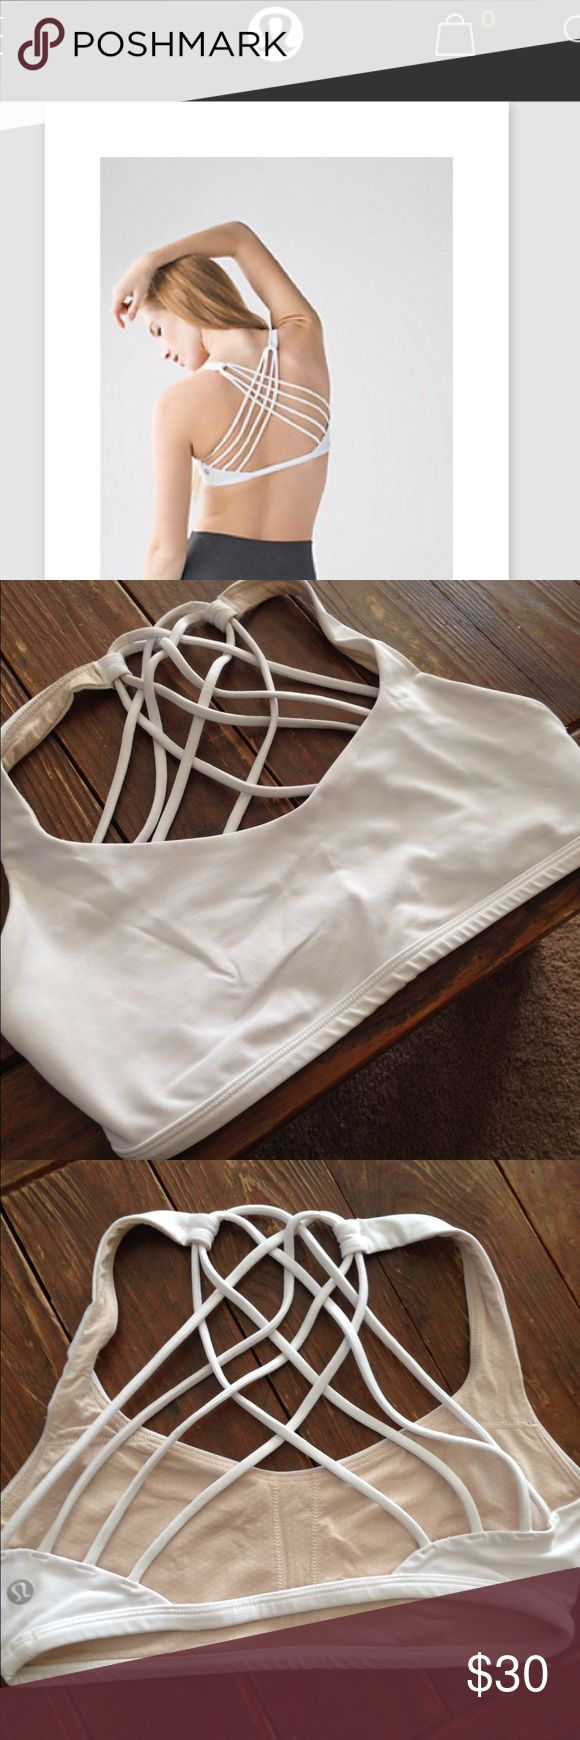 Free to be wild sports bra White free to be wild sports bra. Only worn a handful of times. lululemon athletica Other